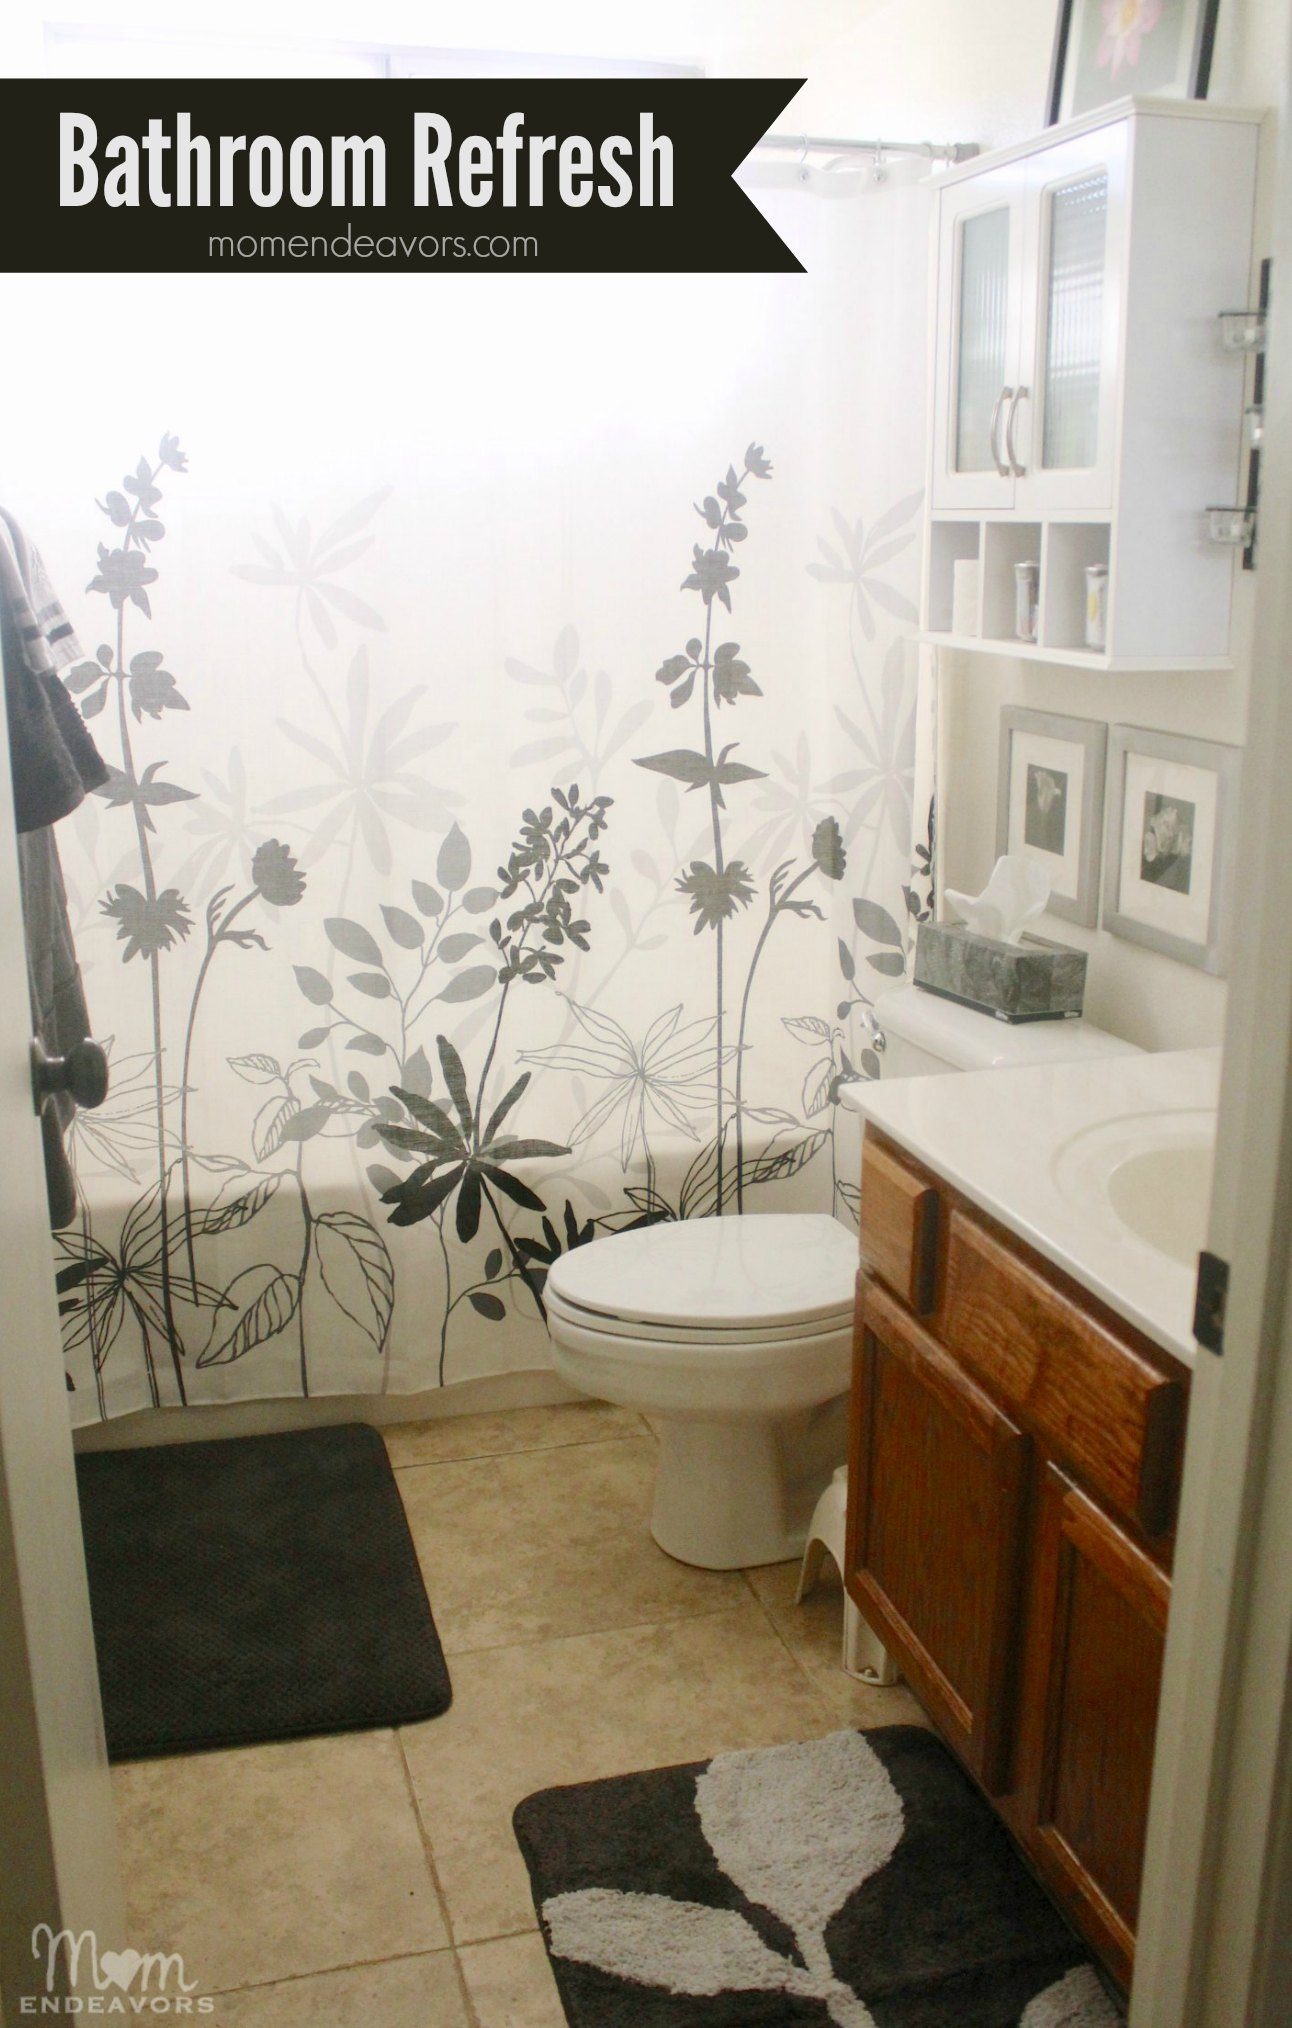 Bathroom Refresh2